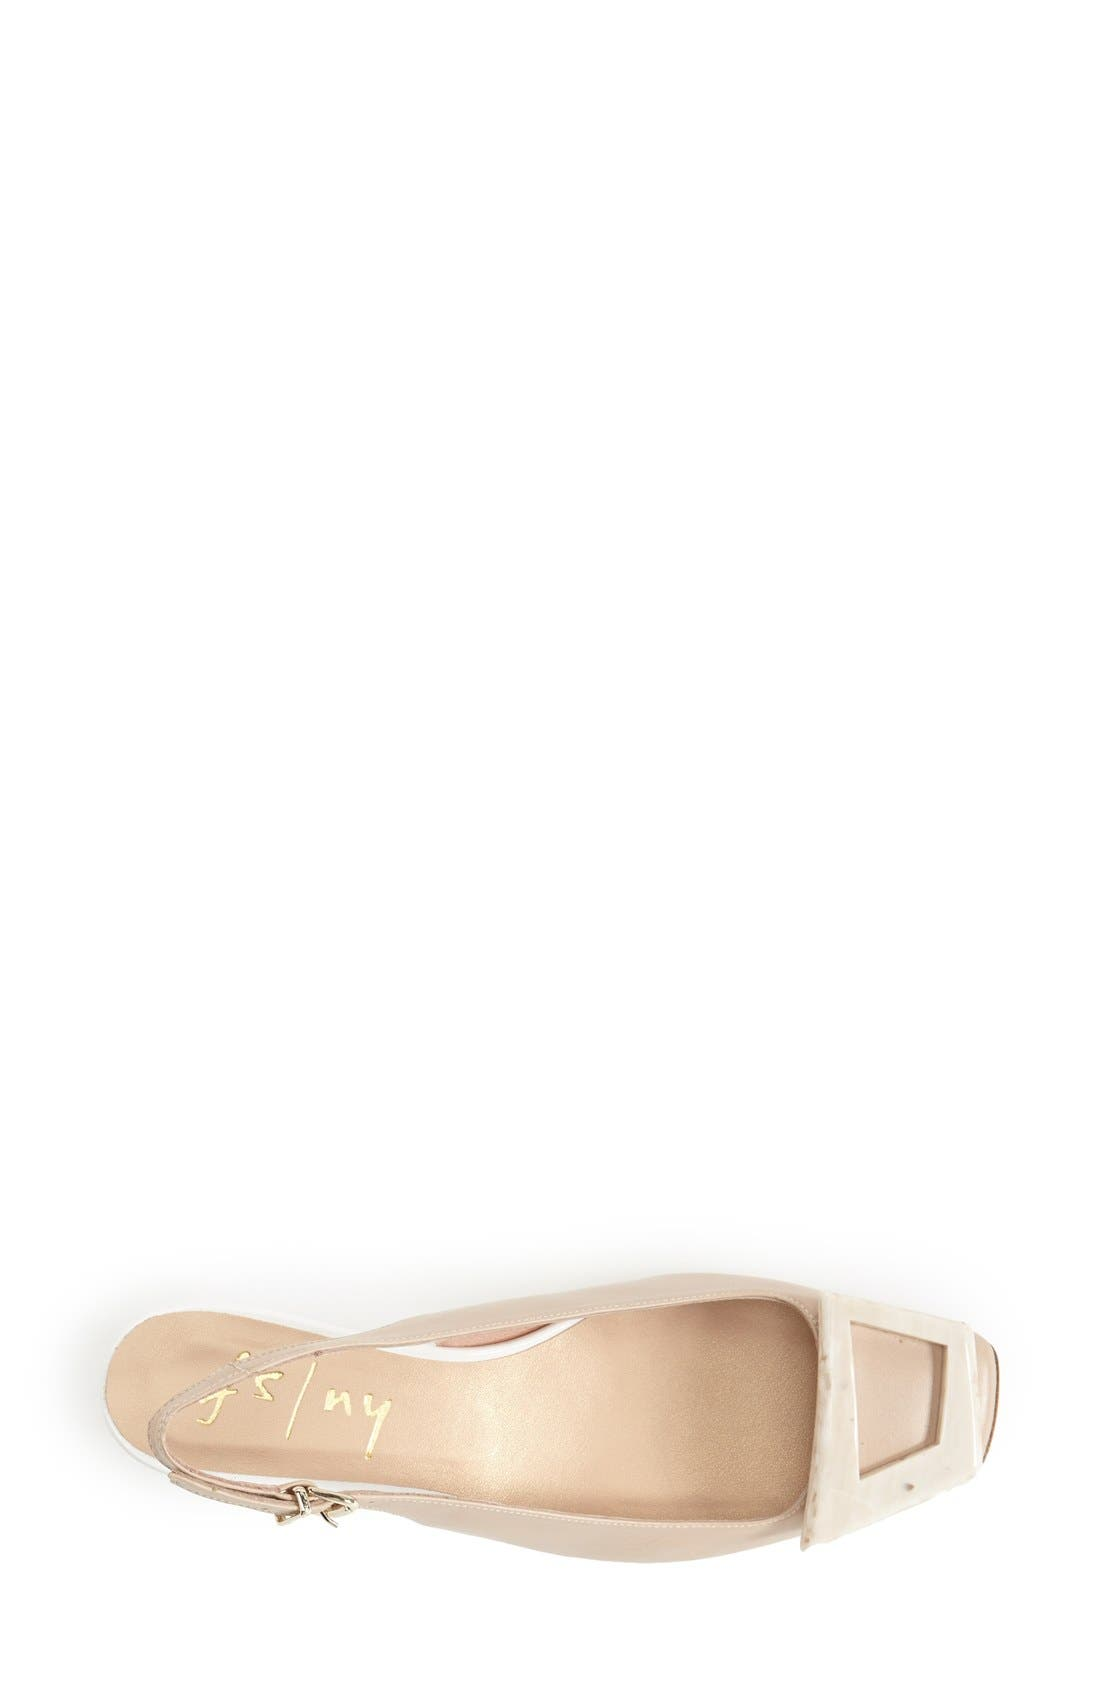 Alternate Image 3  - French Sole 'Noter' Slingback Wedge Pump (Women)